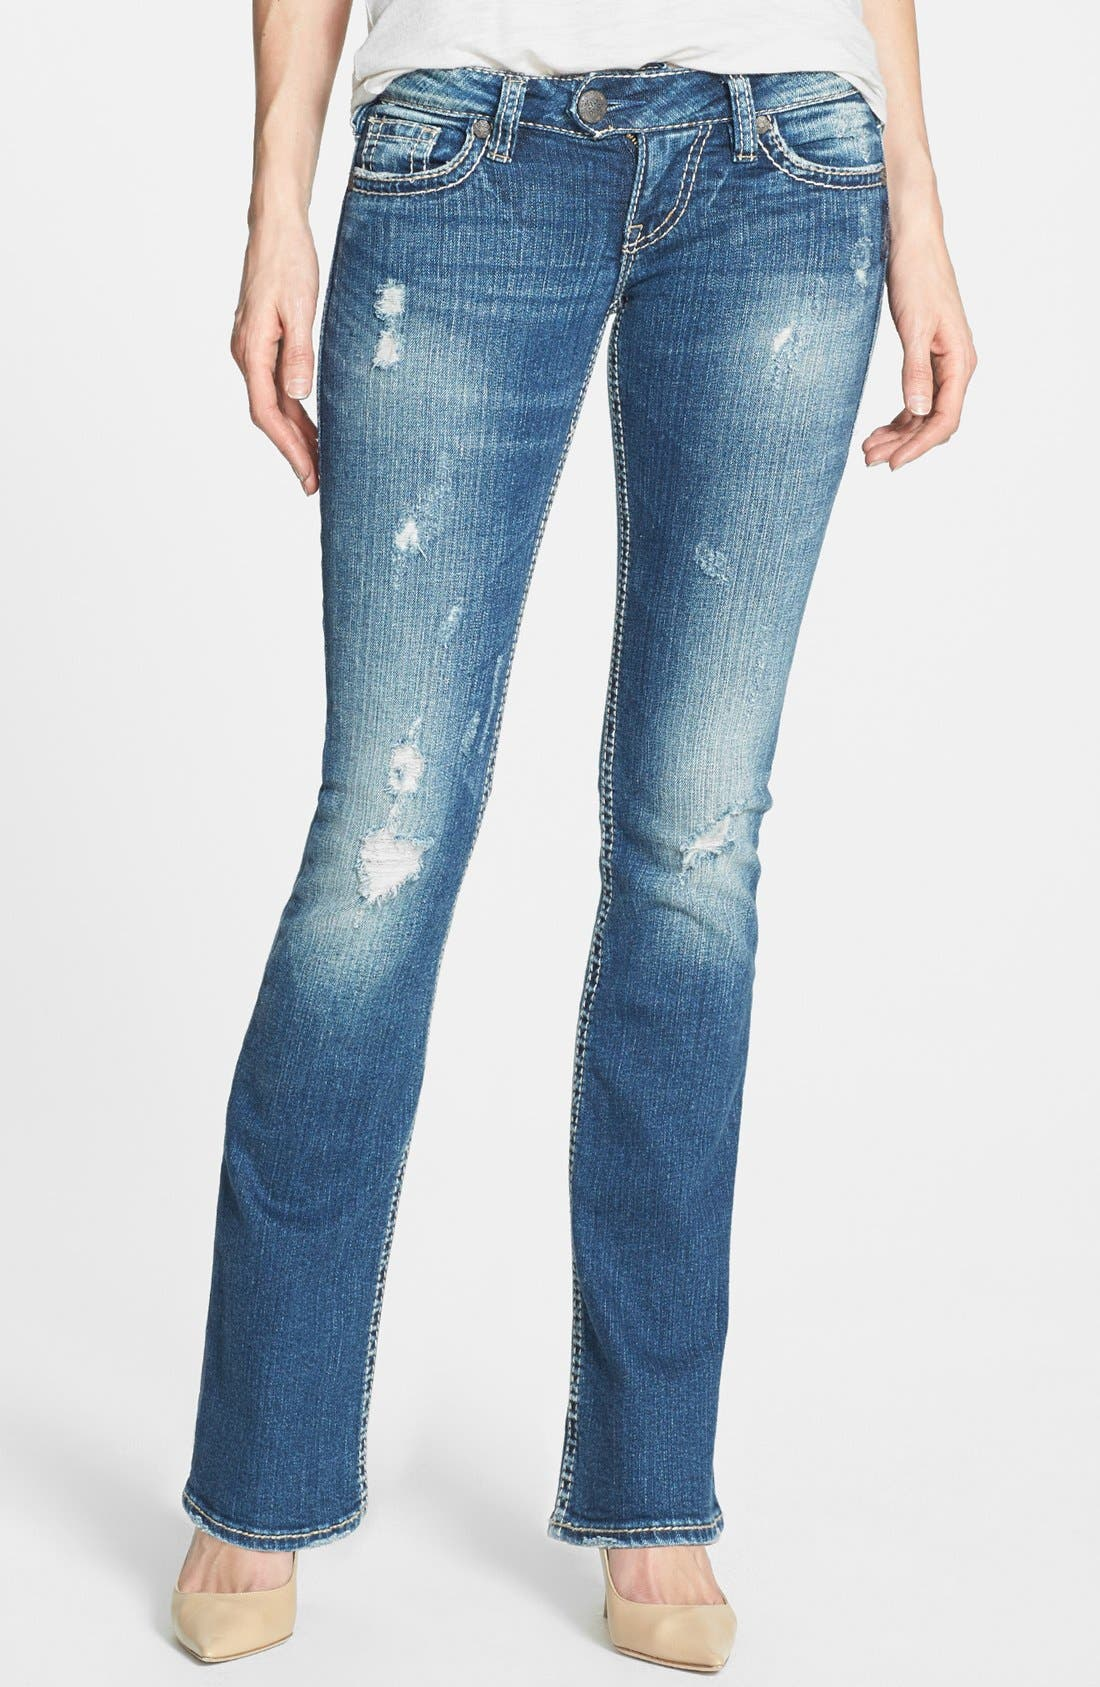 Main Image - Silver Jeans Co. 'Tuesday' Distressed Bootcut Jeans (Indigo)